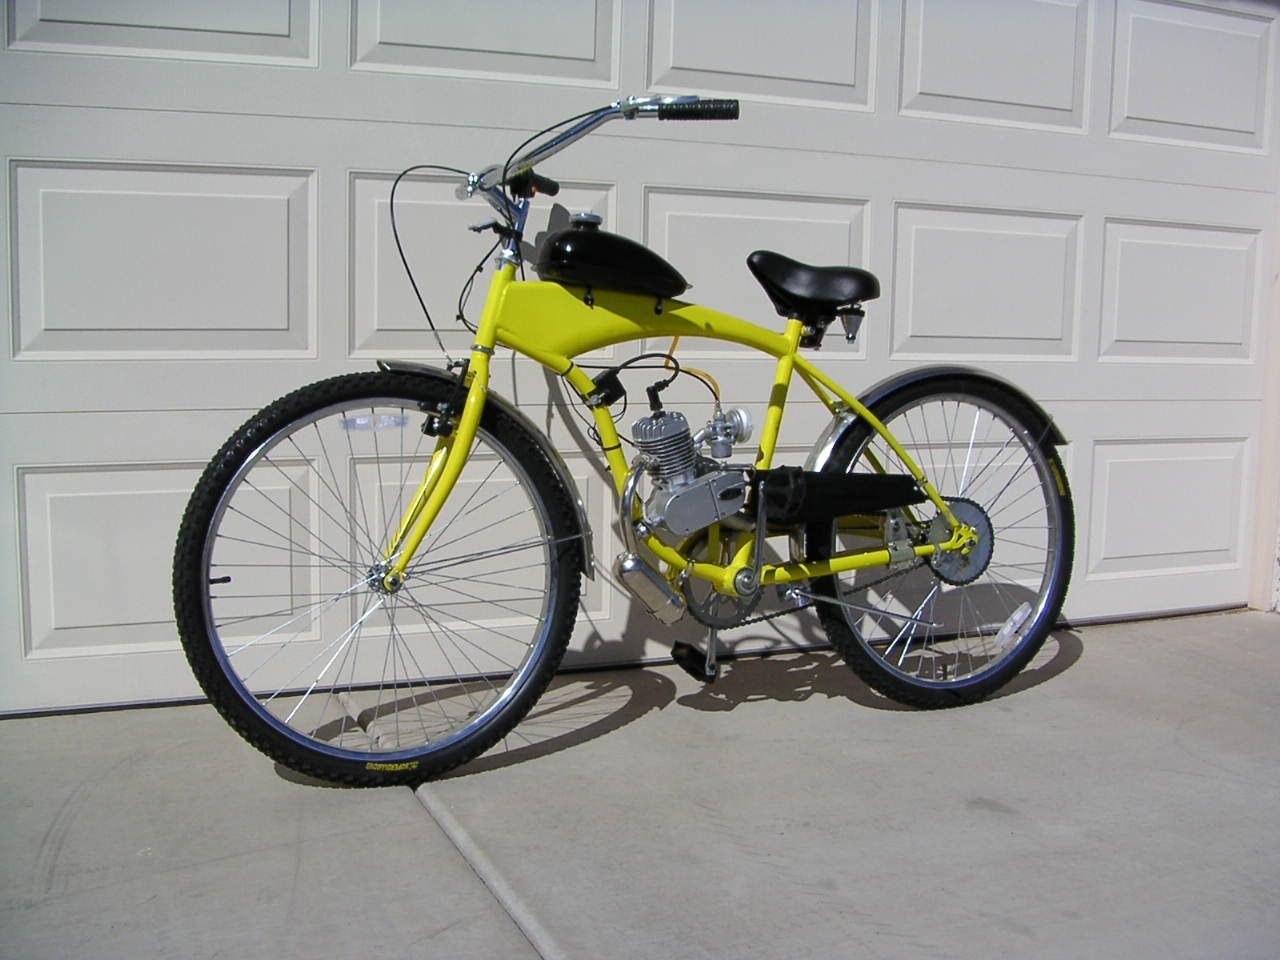 yellow-tiger-005-center-mount-bicycle-motor-kit.jpg